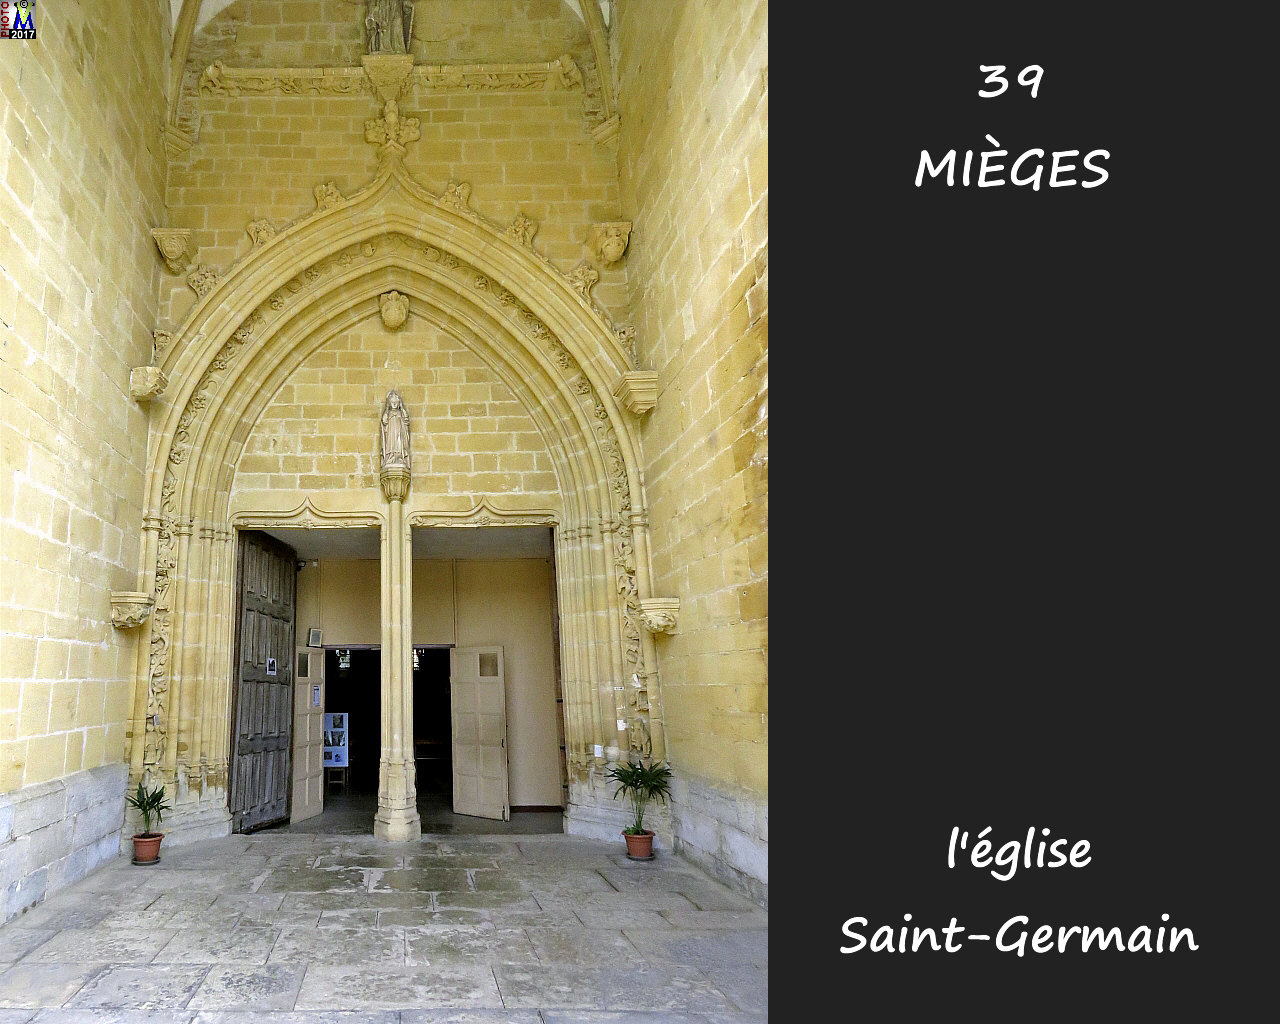 39MIEGES_eglise_120.jpg